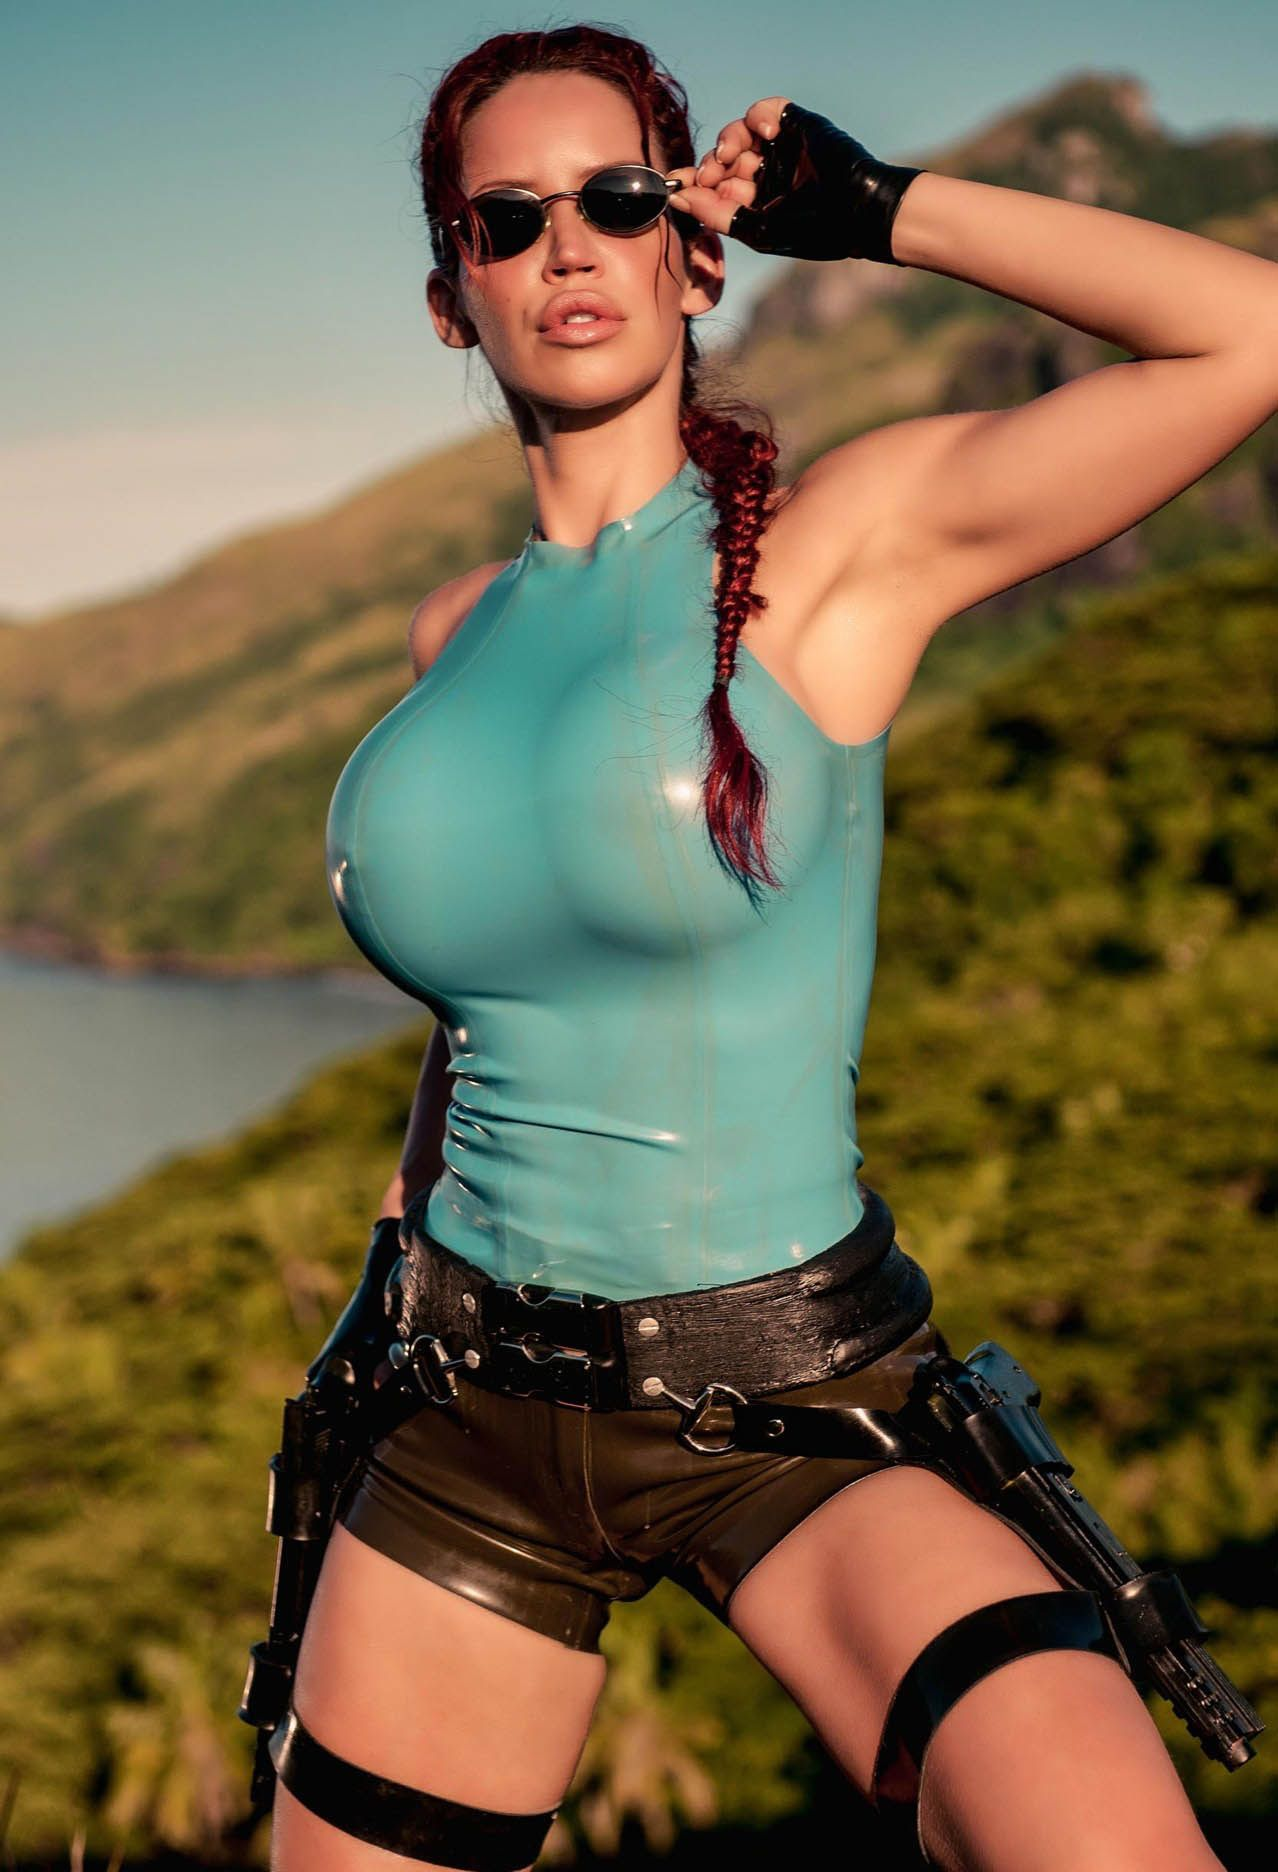 Lara croft underground latex mod sexy download